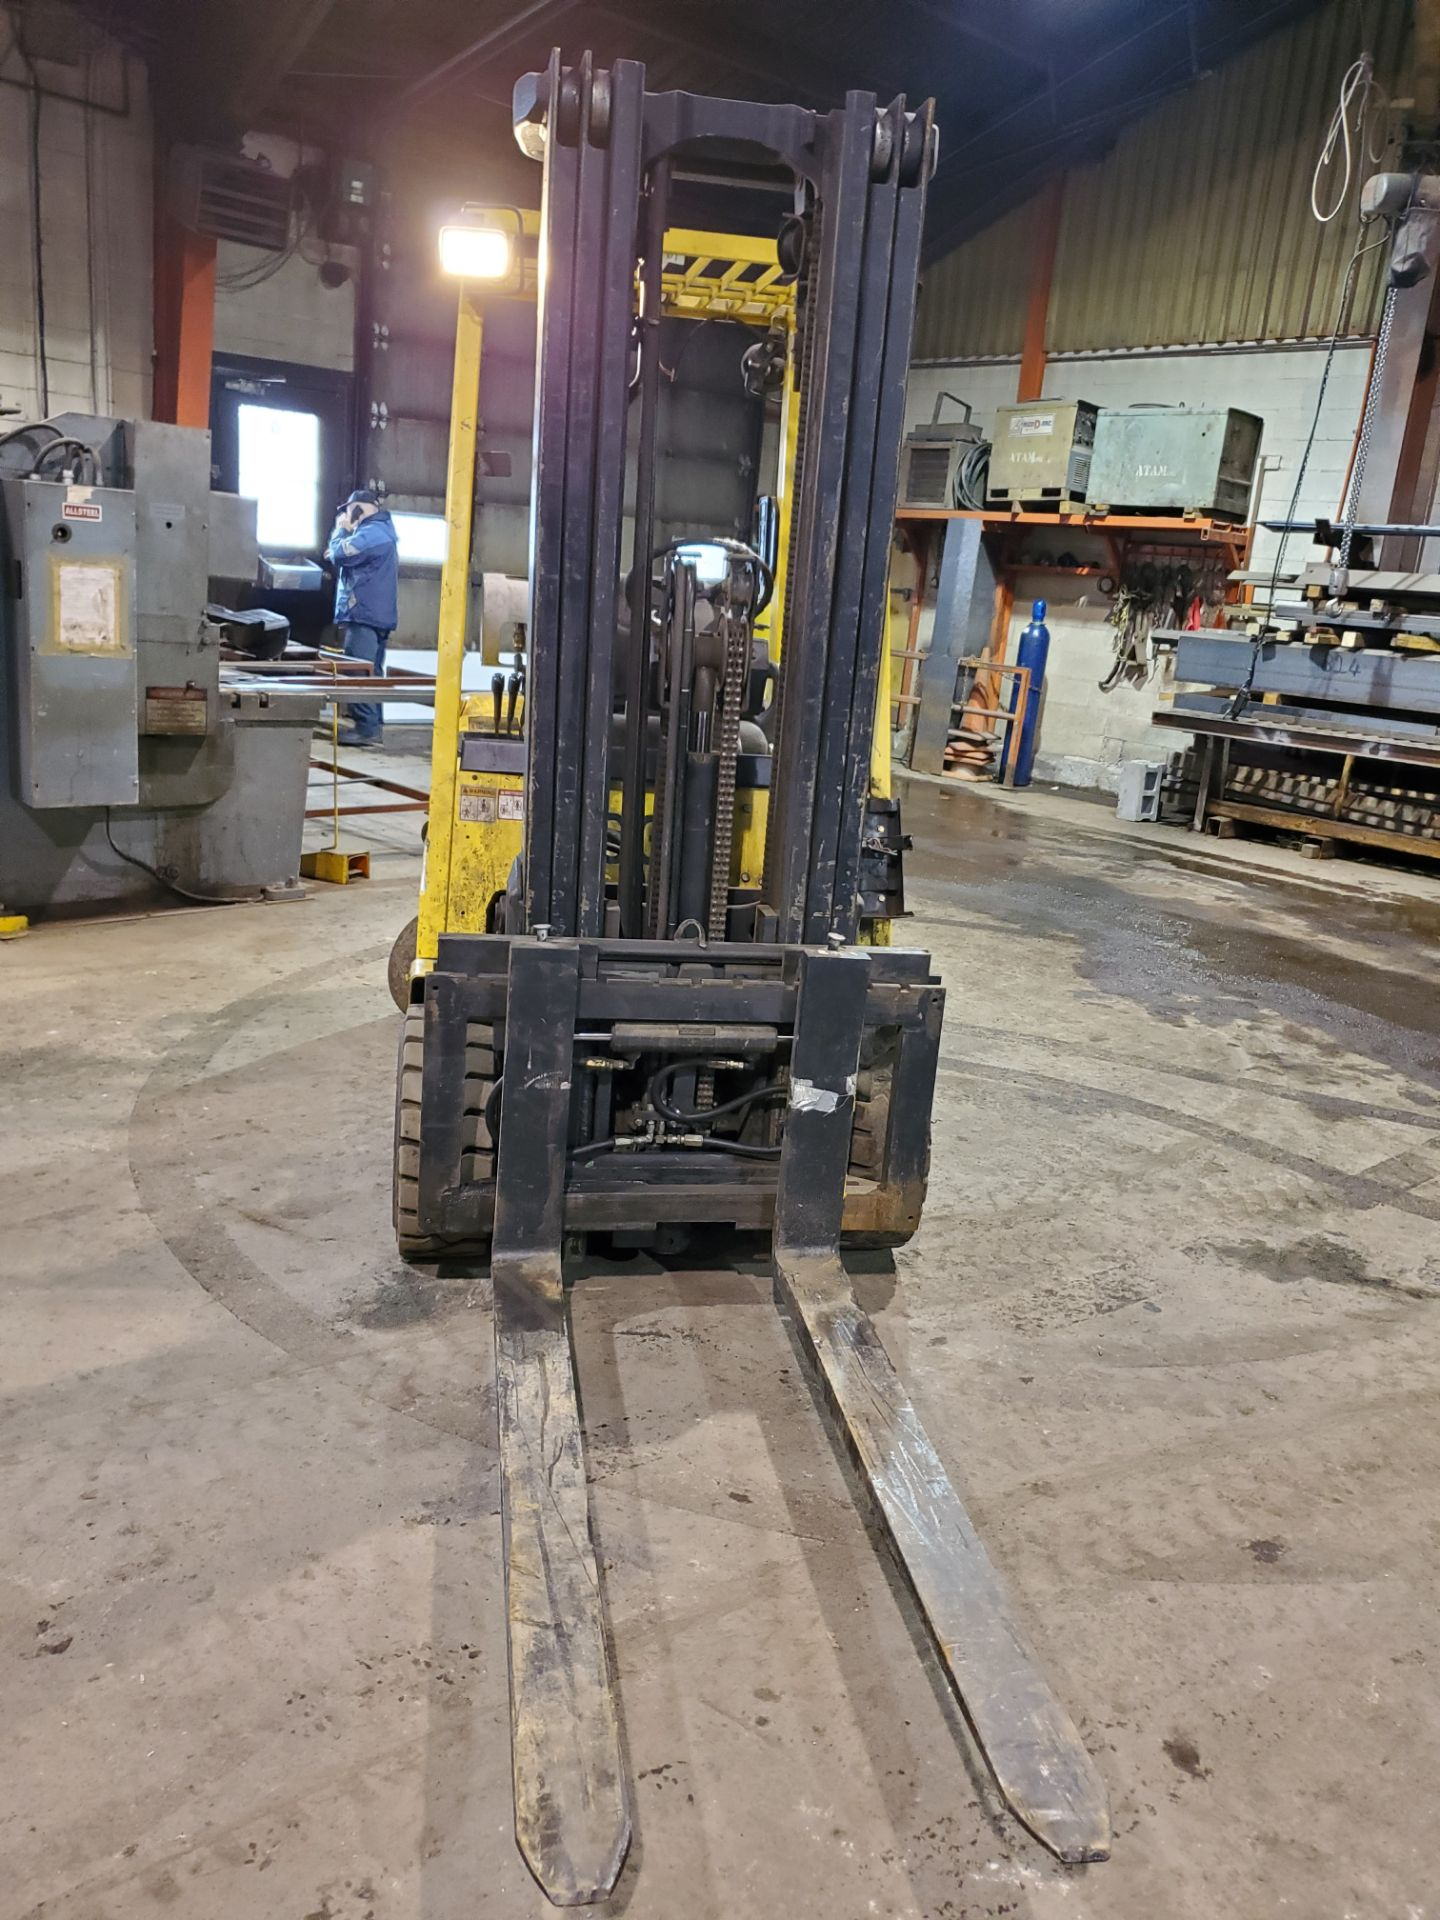 HYSTER PROPANE FORKLIFT, S60XM 6000LB CAPACITY, TRIPLE MAST, SIDE SHIFT- LOCATION - LACHINE, QUEBEC - Image 4 of 6